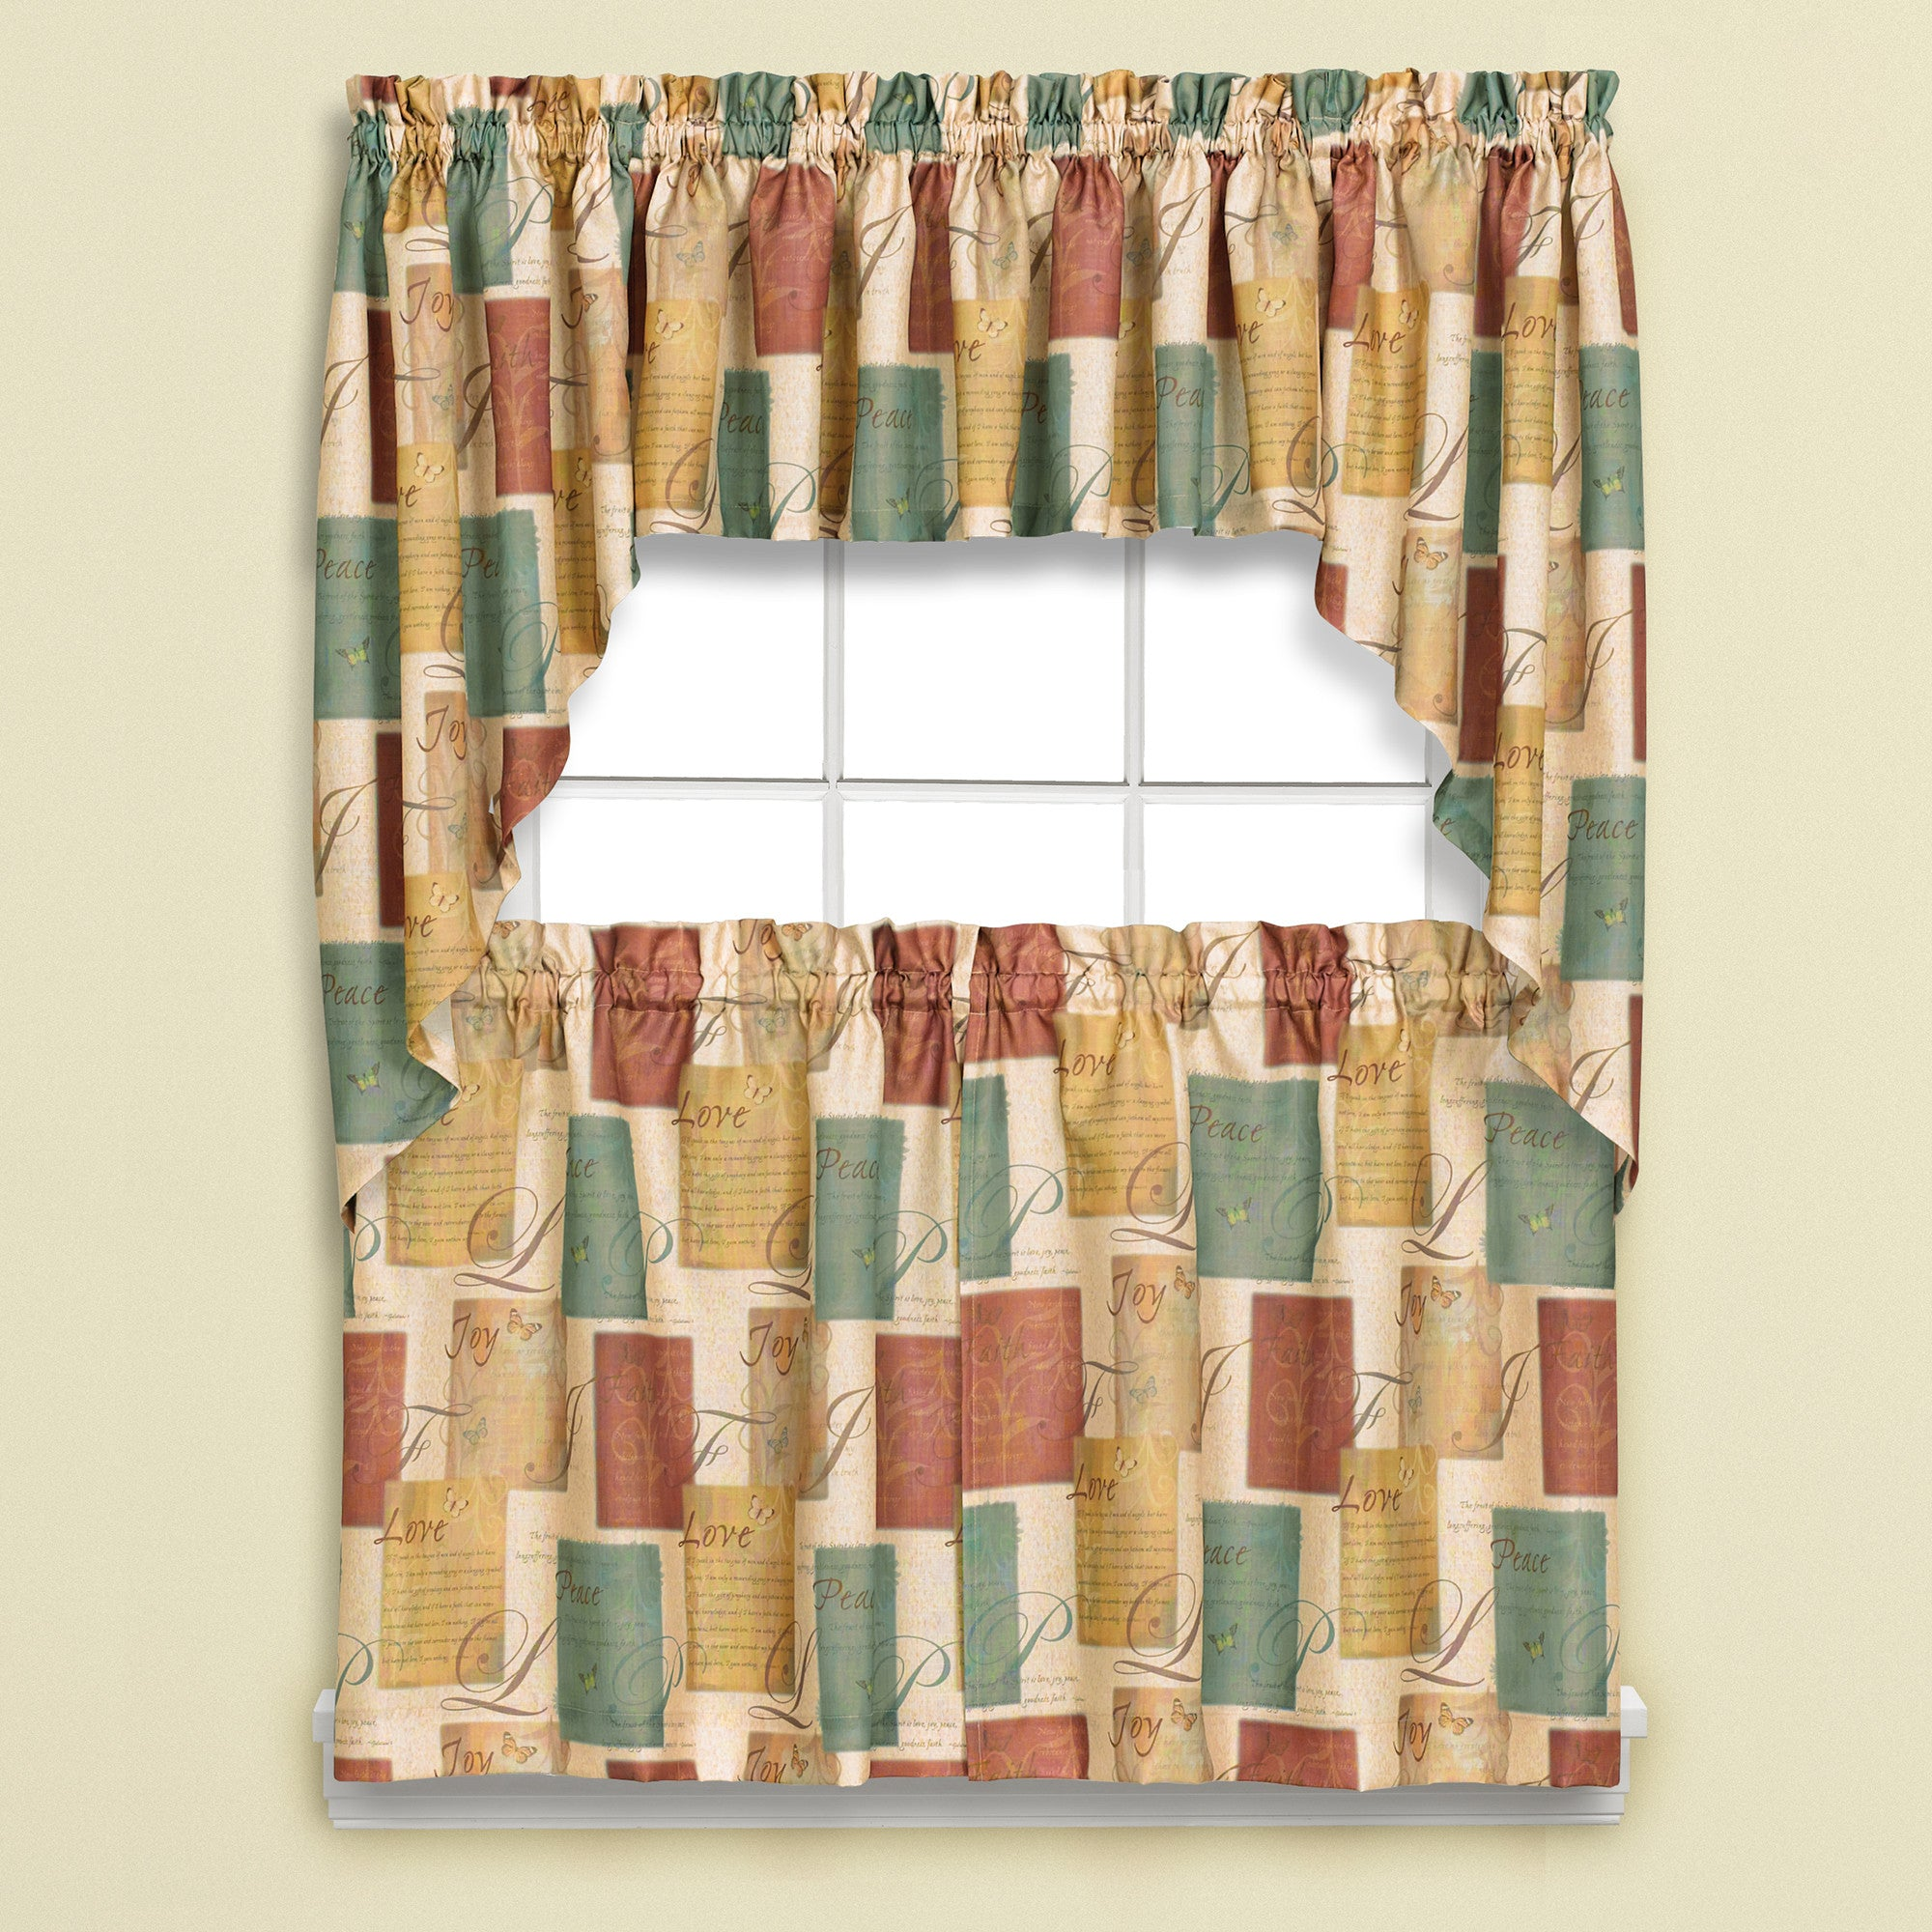 wayfair window swag valance fashions pdx home waterfall croscill curtain treatments reviews serafina